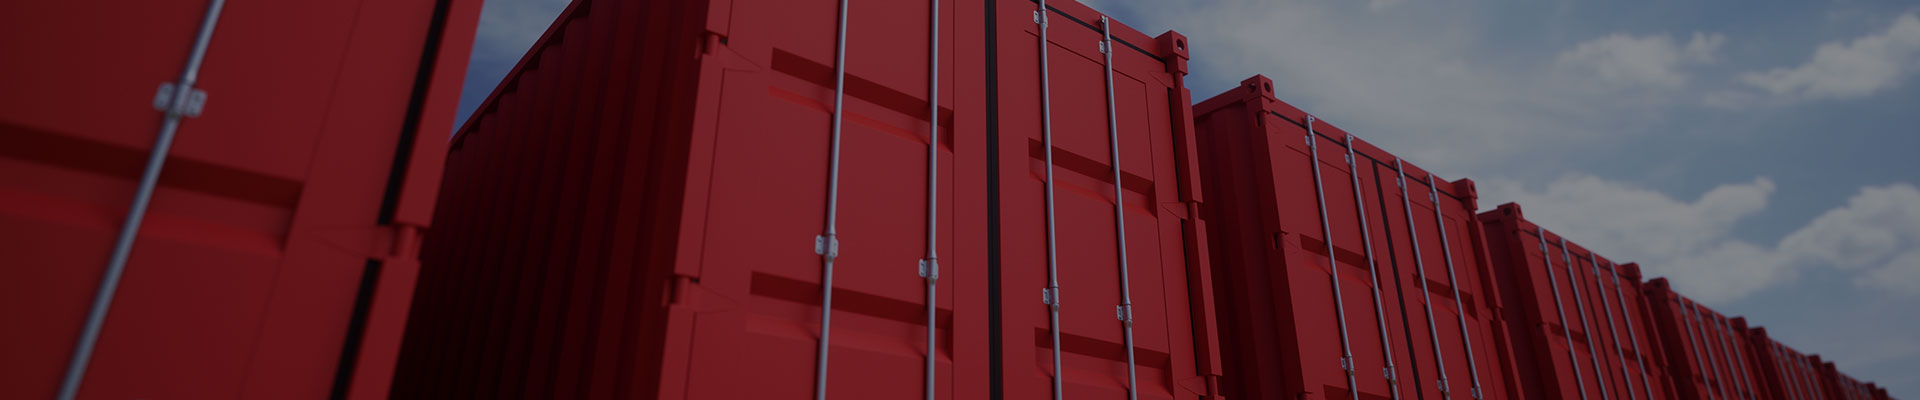 Quality Shipping Containers For Sale